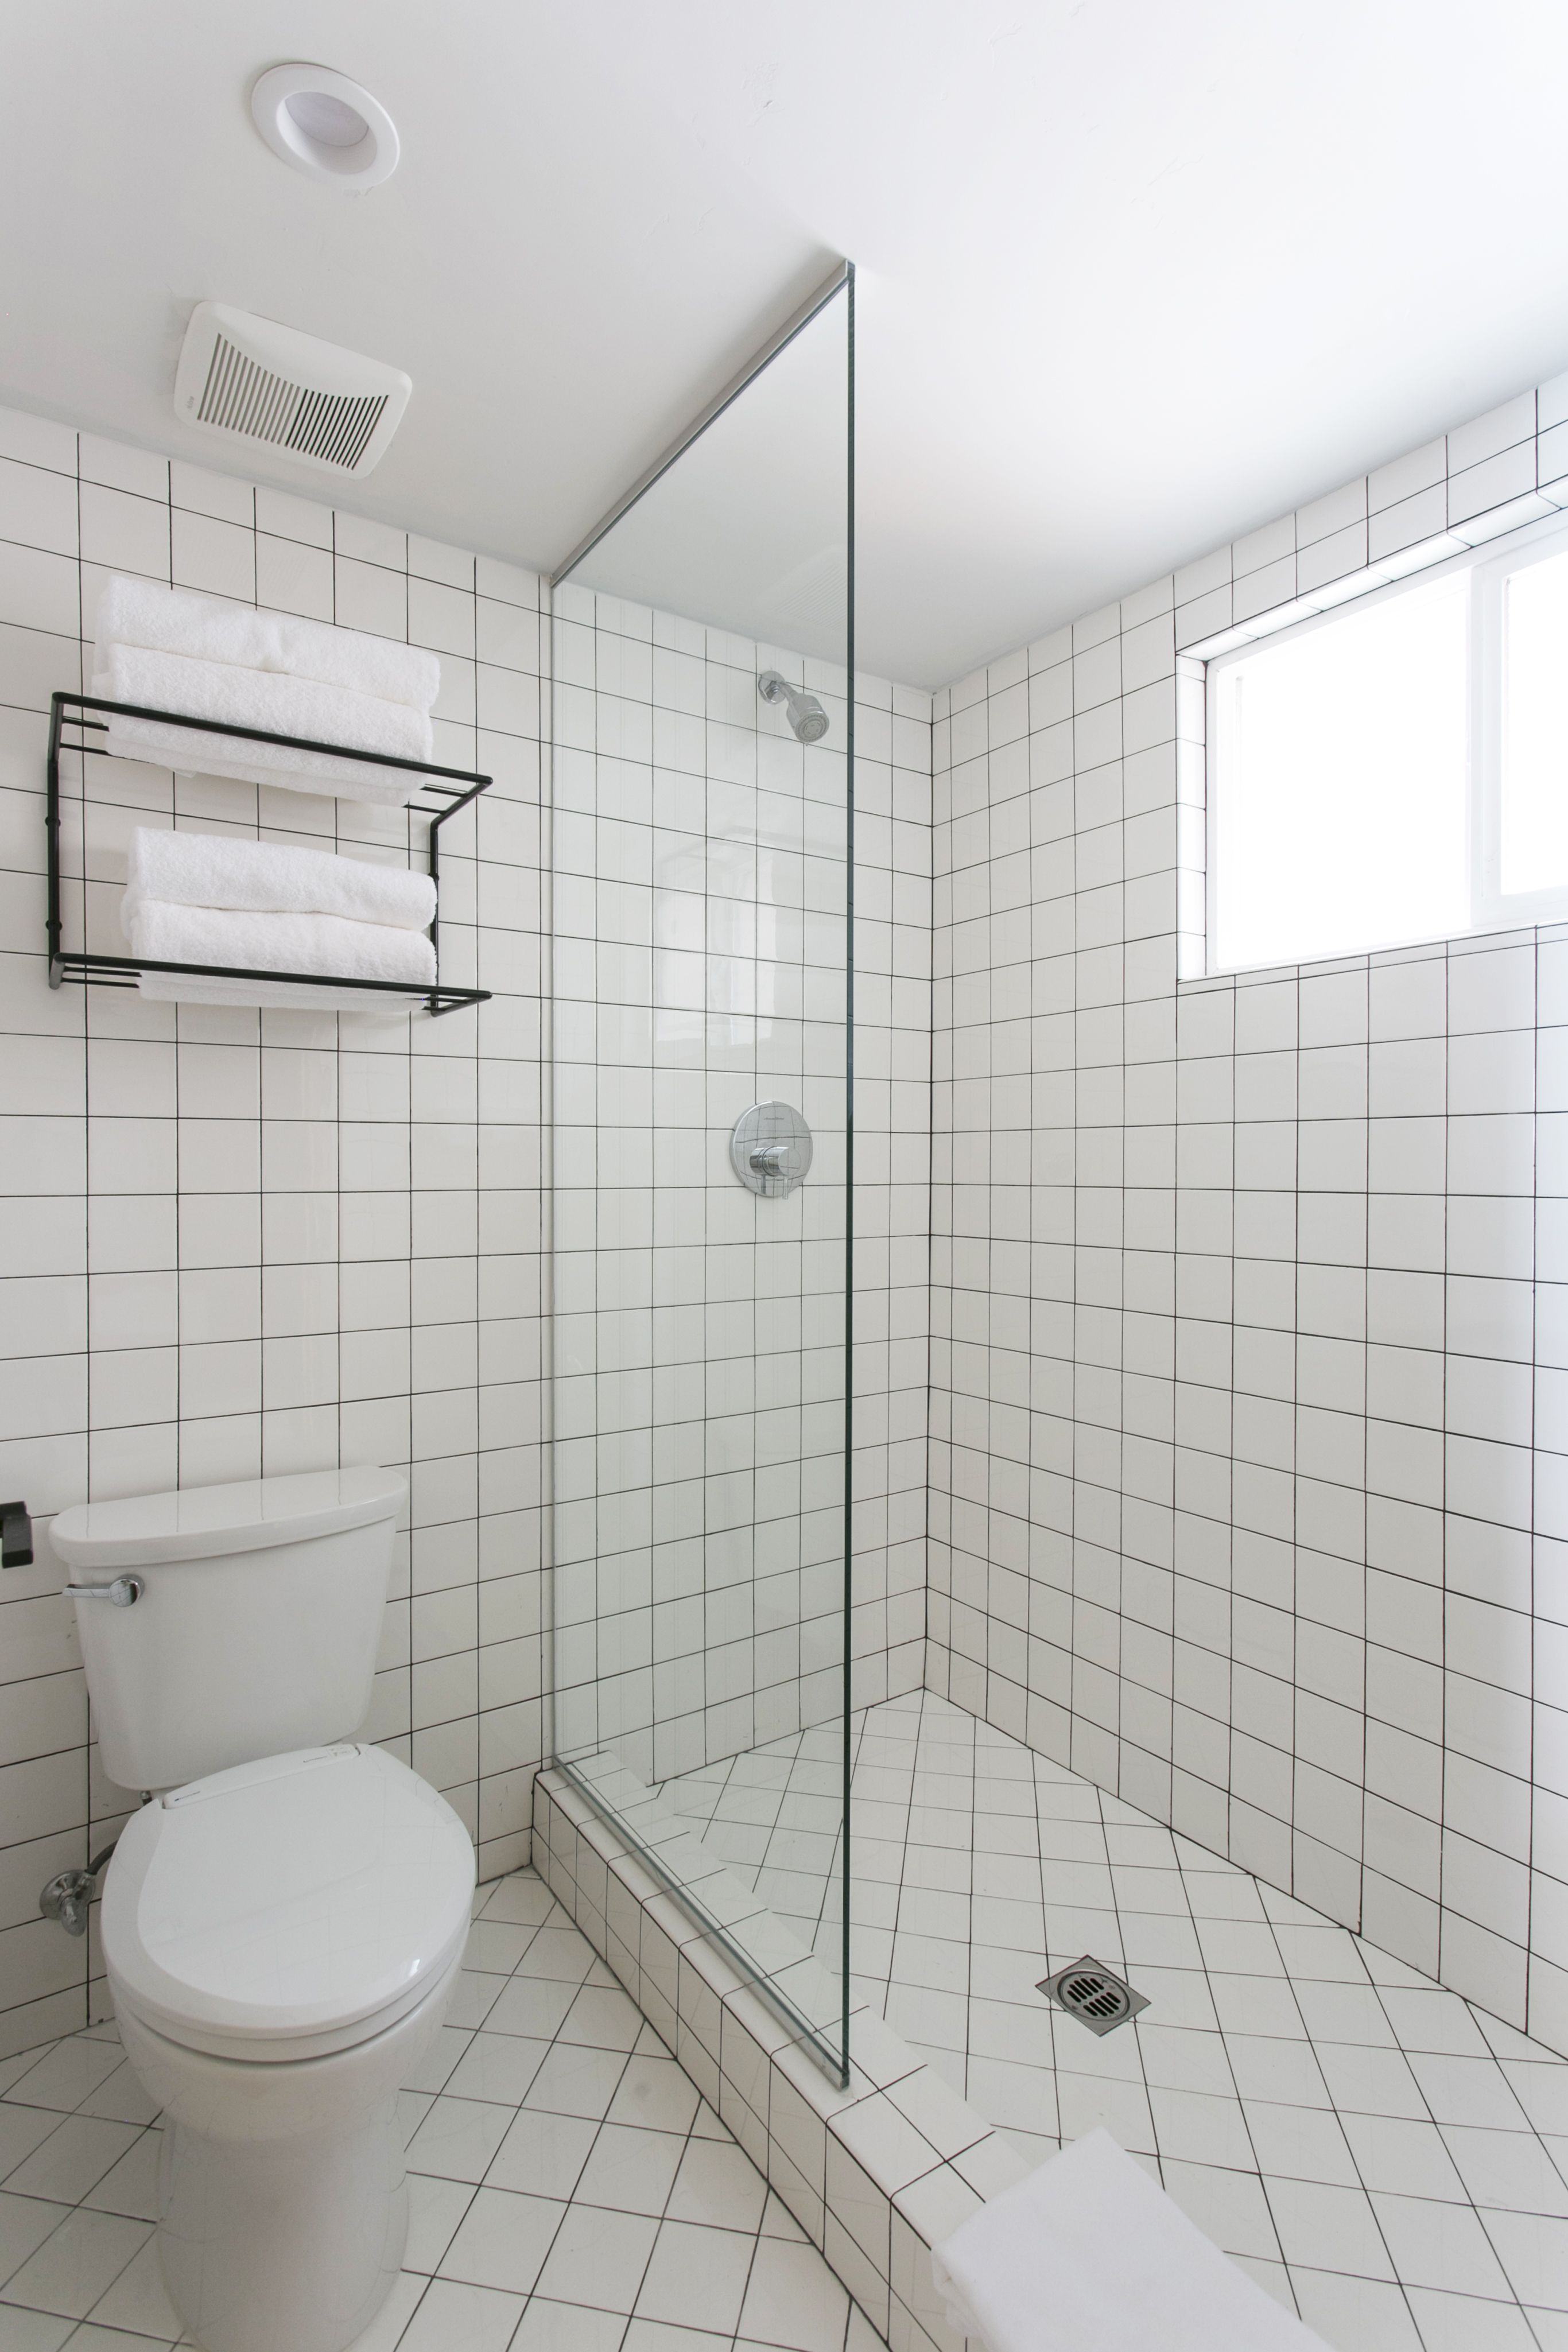 White tiles black grout bathroom - Bathroom Of The Week An Economical Plywood Bath In Tahoe Black Grouttile